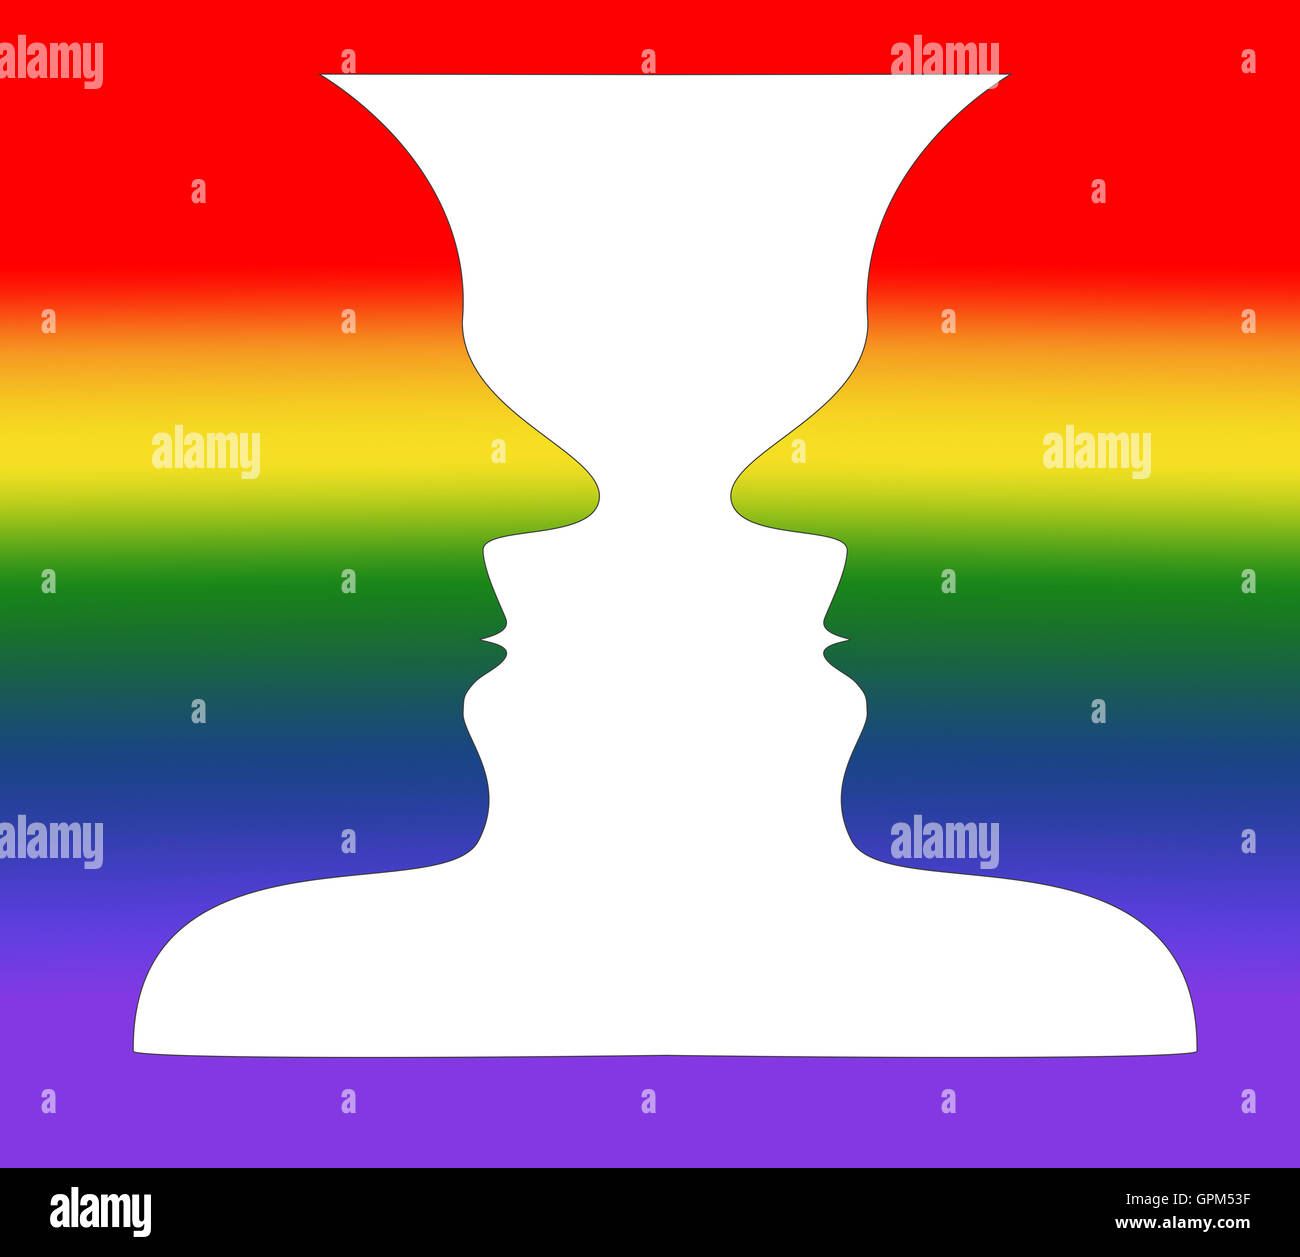 Optical illusion vase stock photos optical illusion vase stock optical illusion a rainbow vase or two people facing each other stock image reviewsmspy